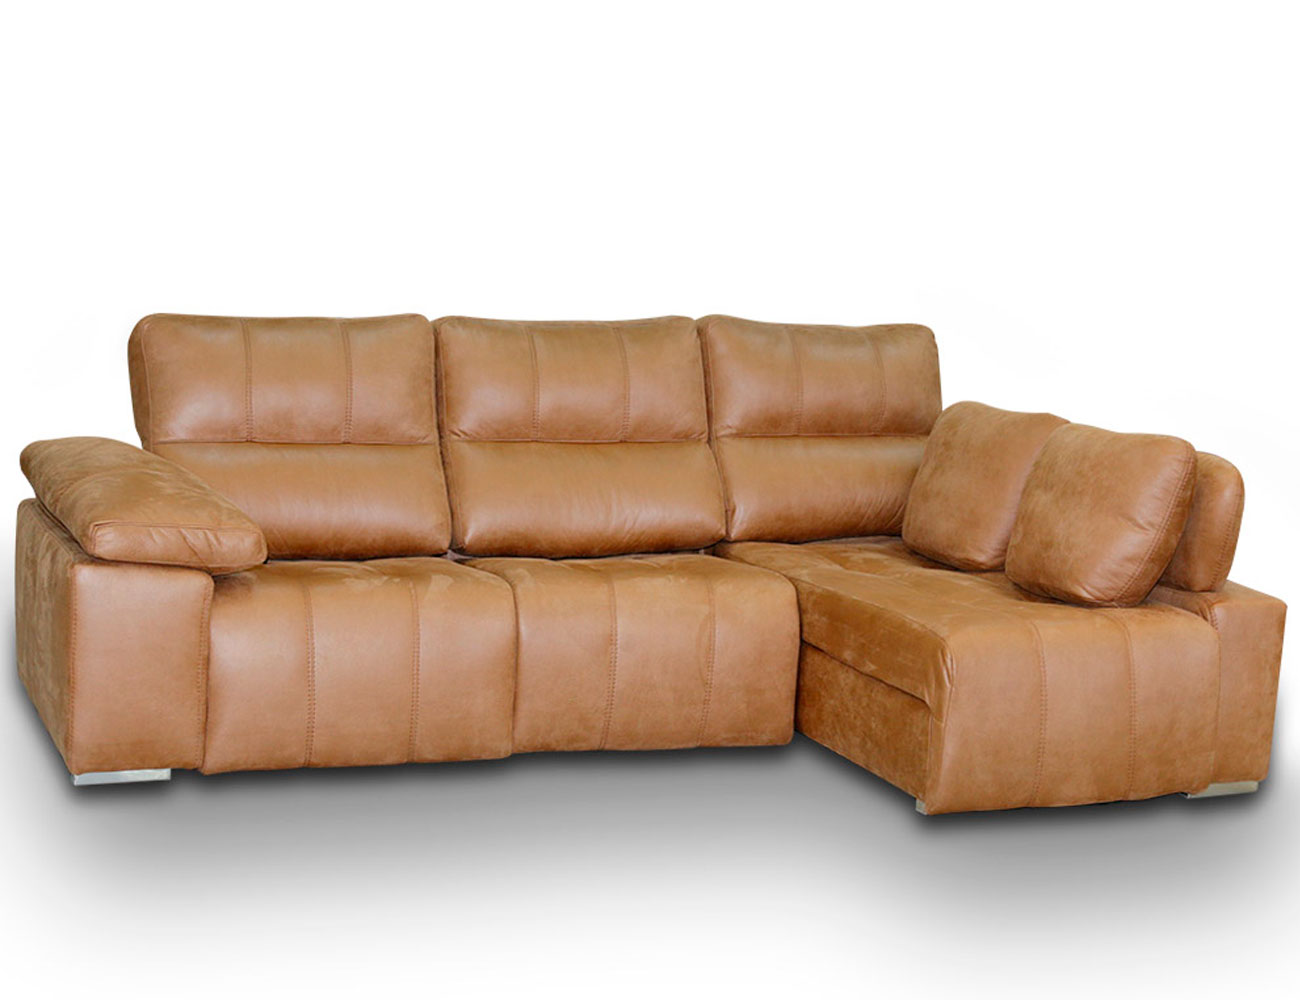 Sofa chaiselongue relax 2 motores anti manchas30